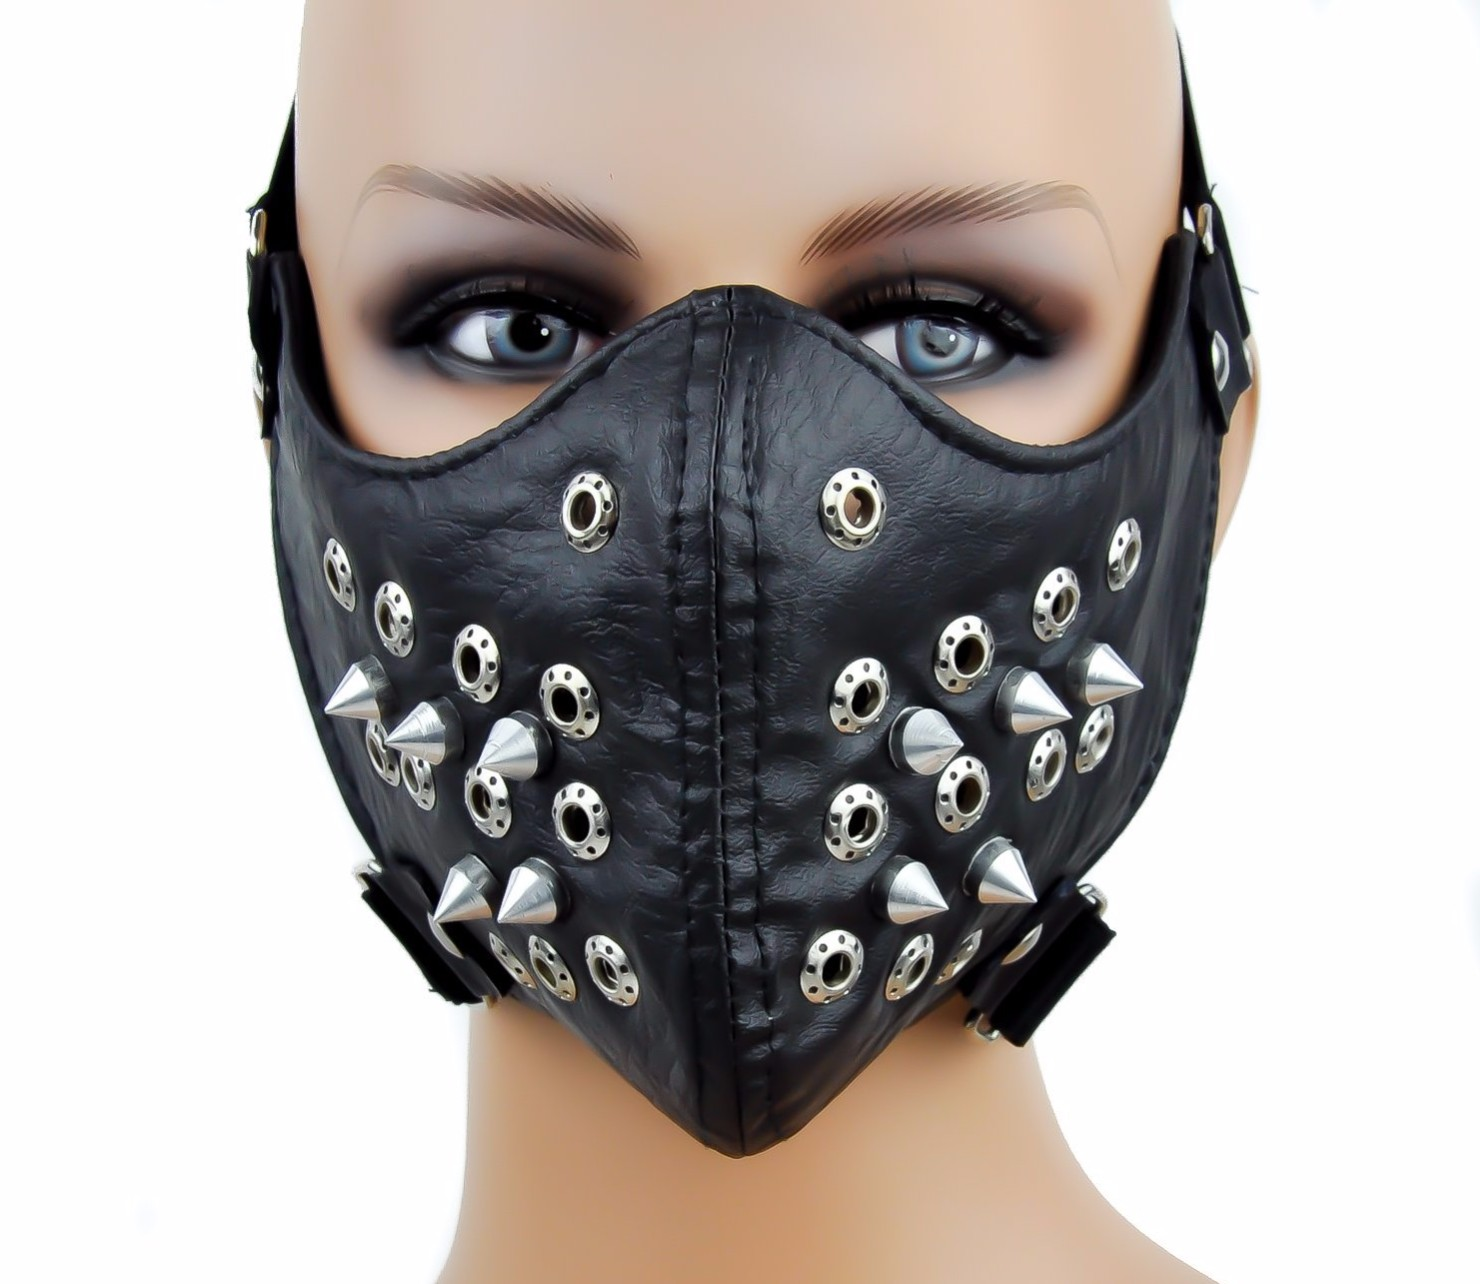 Cool motocycle face mask - not a smart wearable